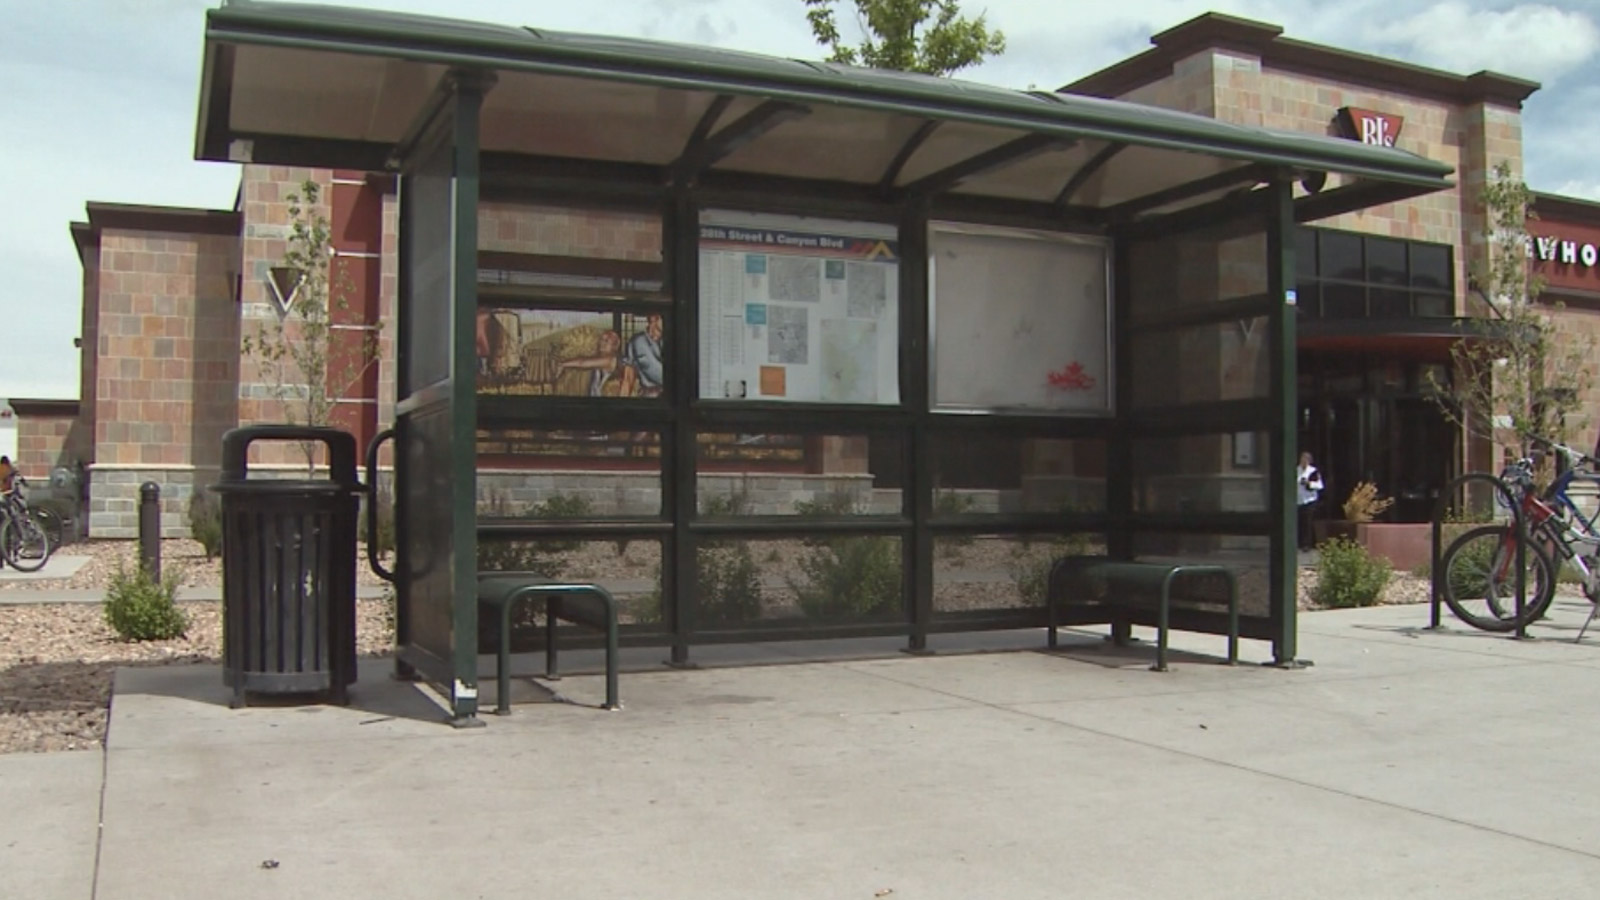 The bus stop in Boulder where a transgender man was attacked (credit: CBS)